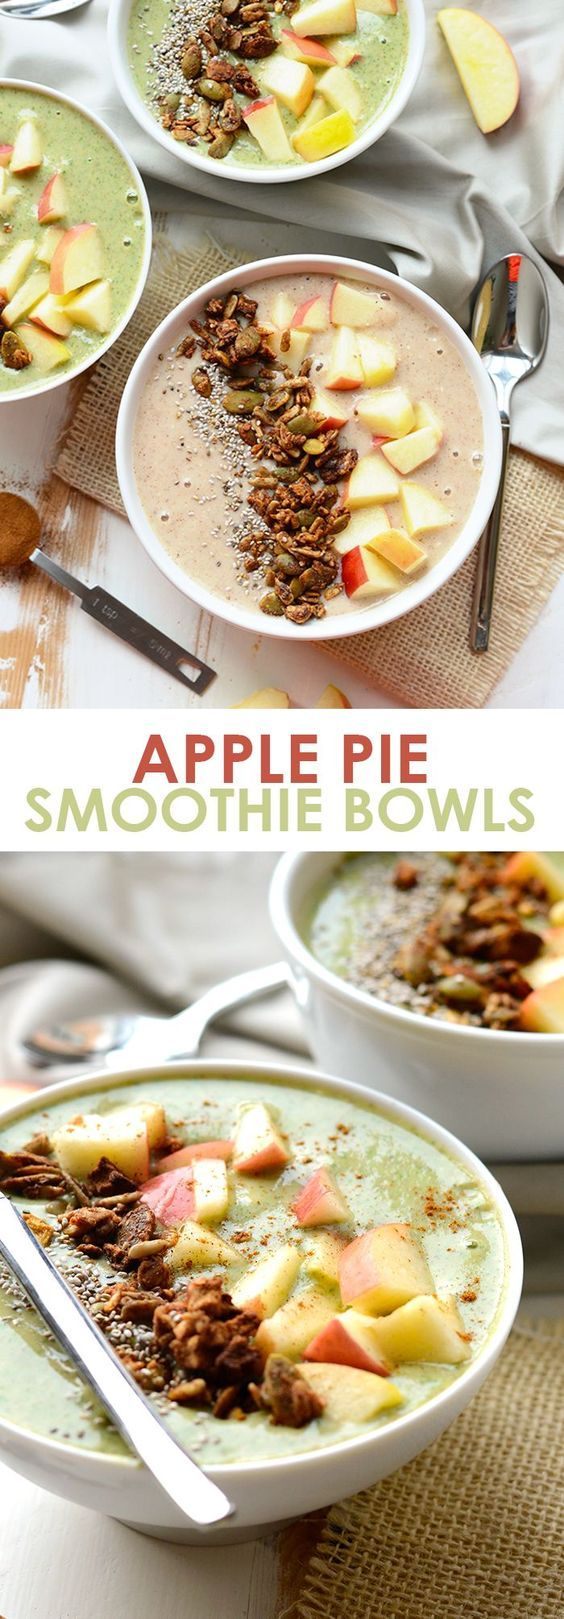 Love apple pie? Now you can eat it for breakfast and not feel an ounce of guilt! This apple pie smoothie is made with real food and classic apple pie flavor!